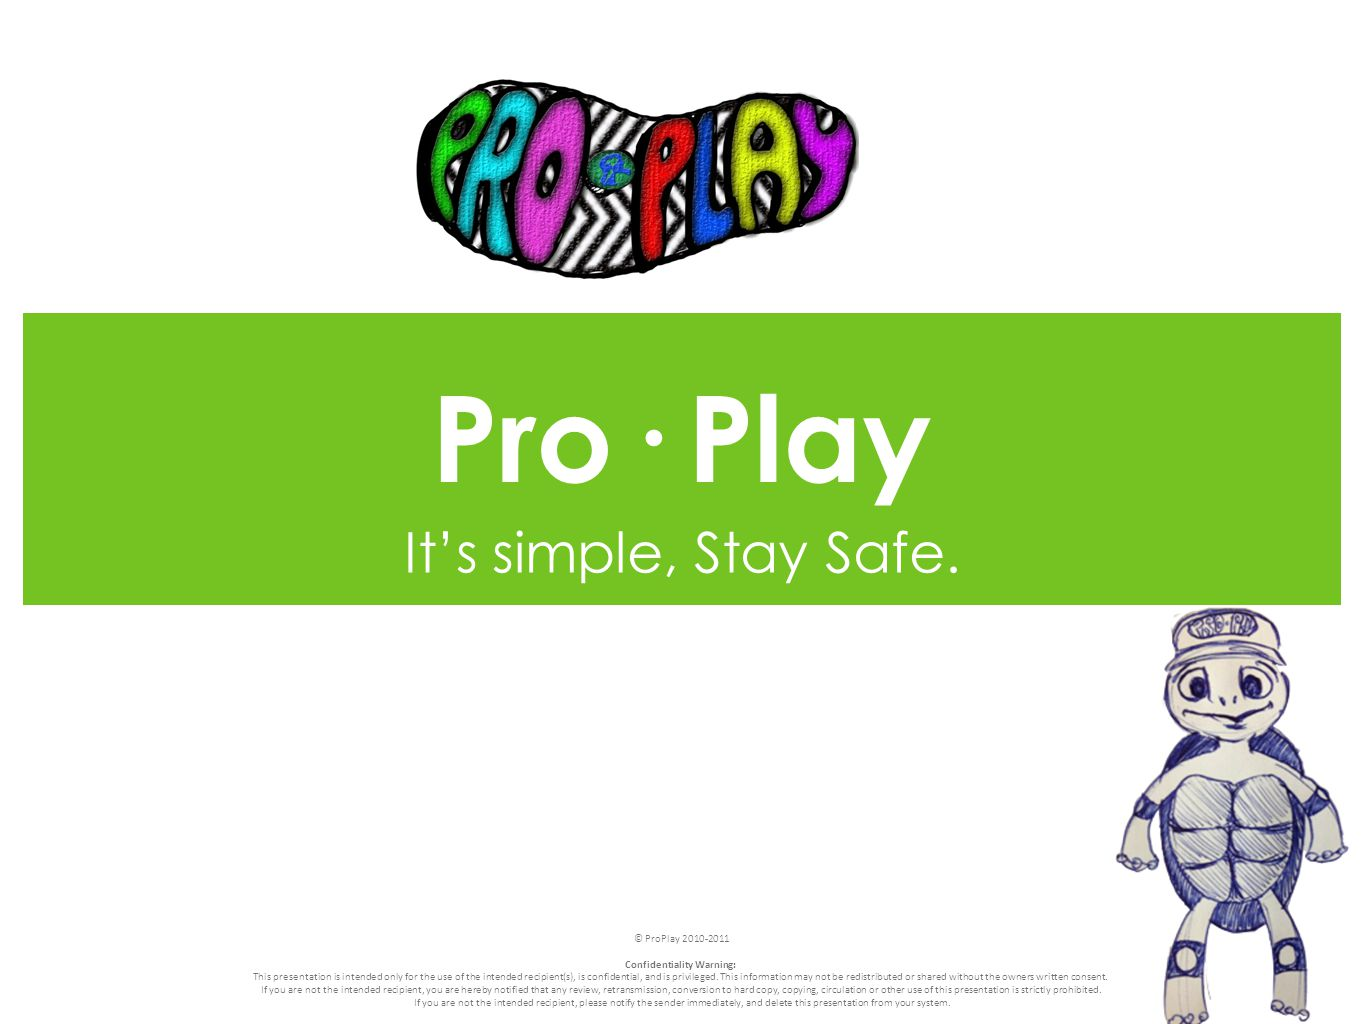 Pro· Play It's simple, Stay Safe.